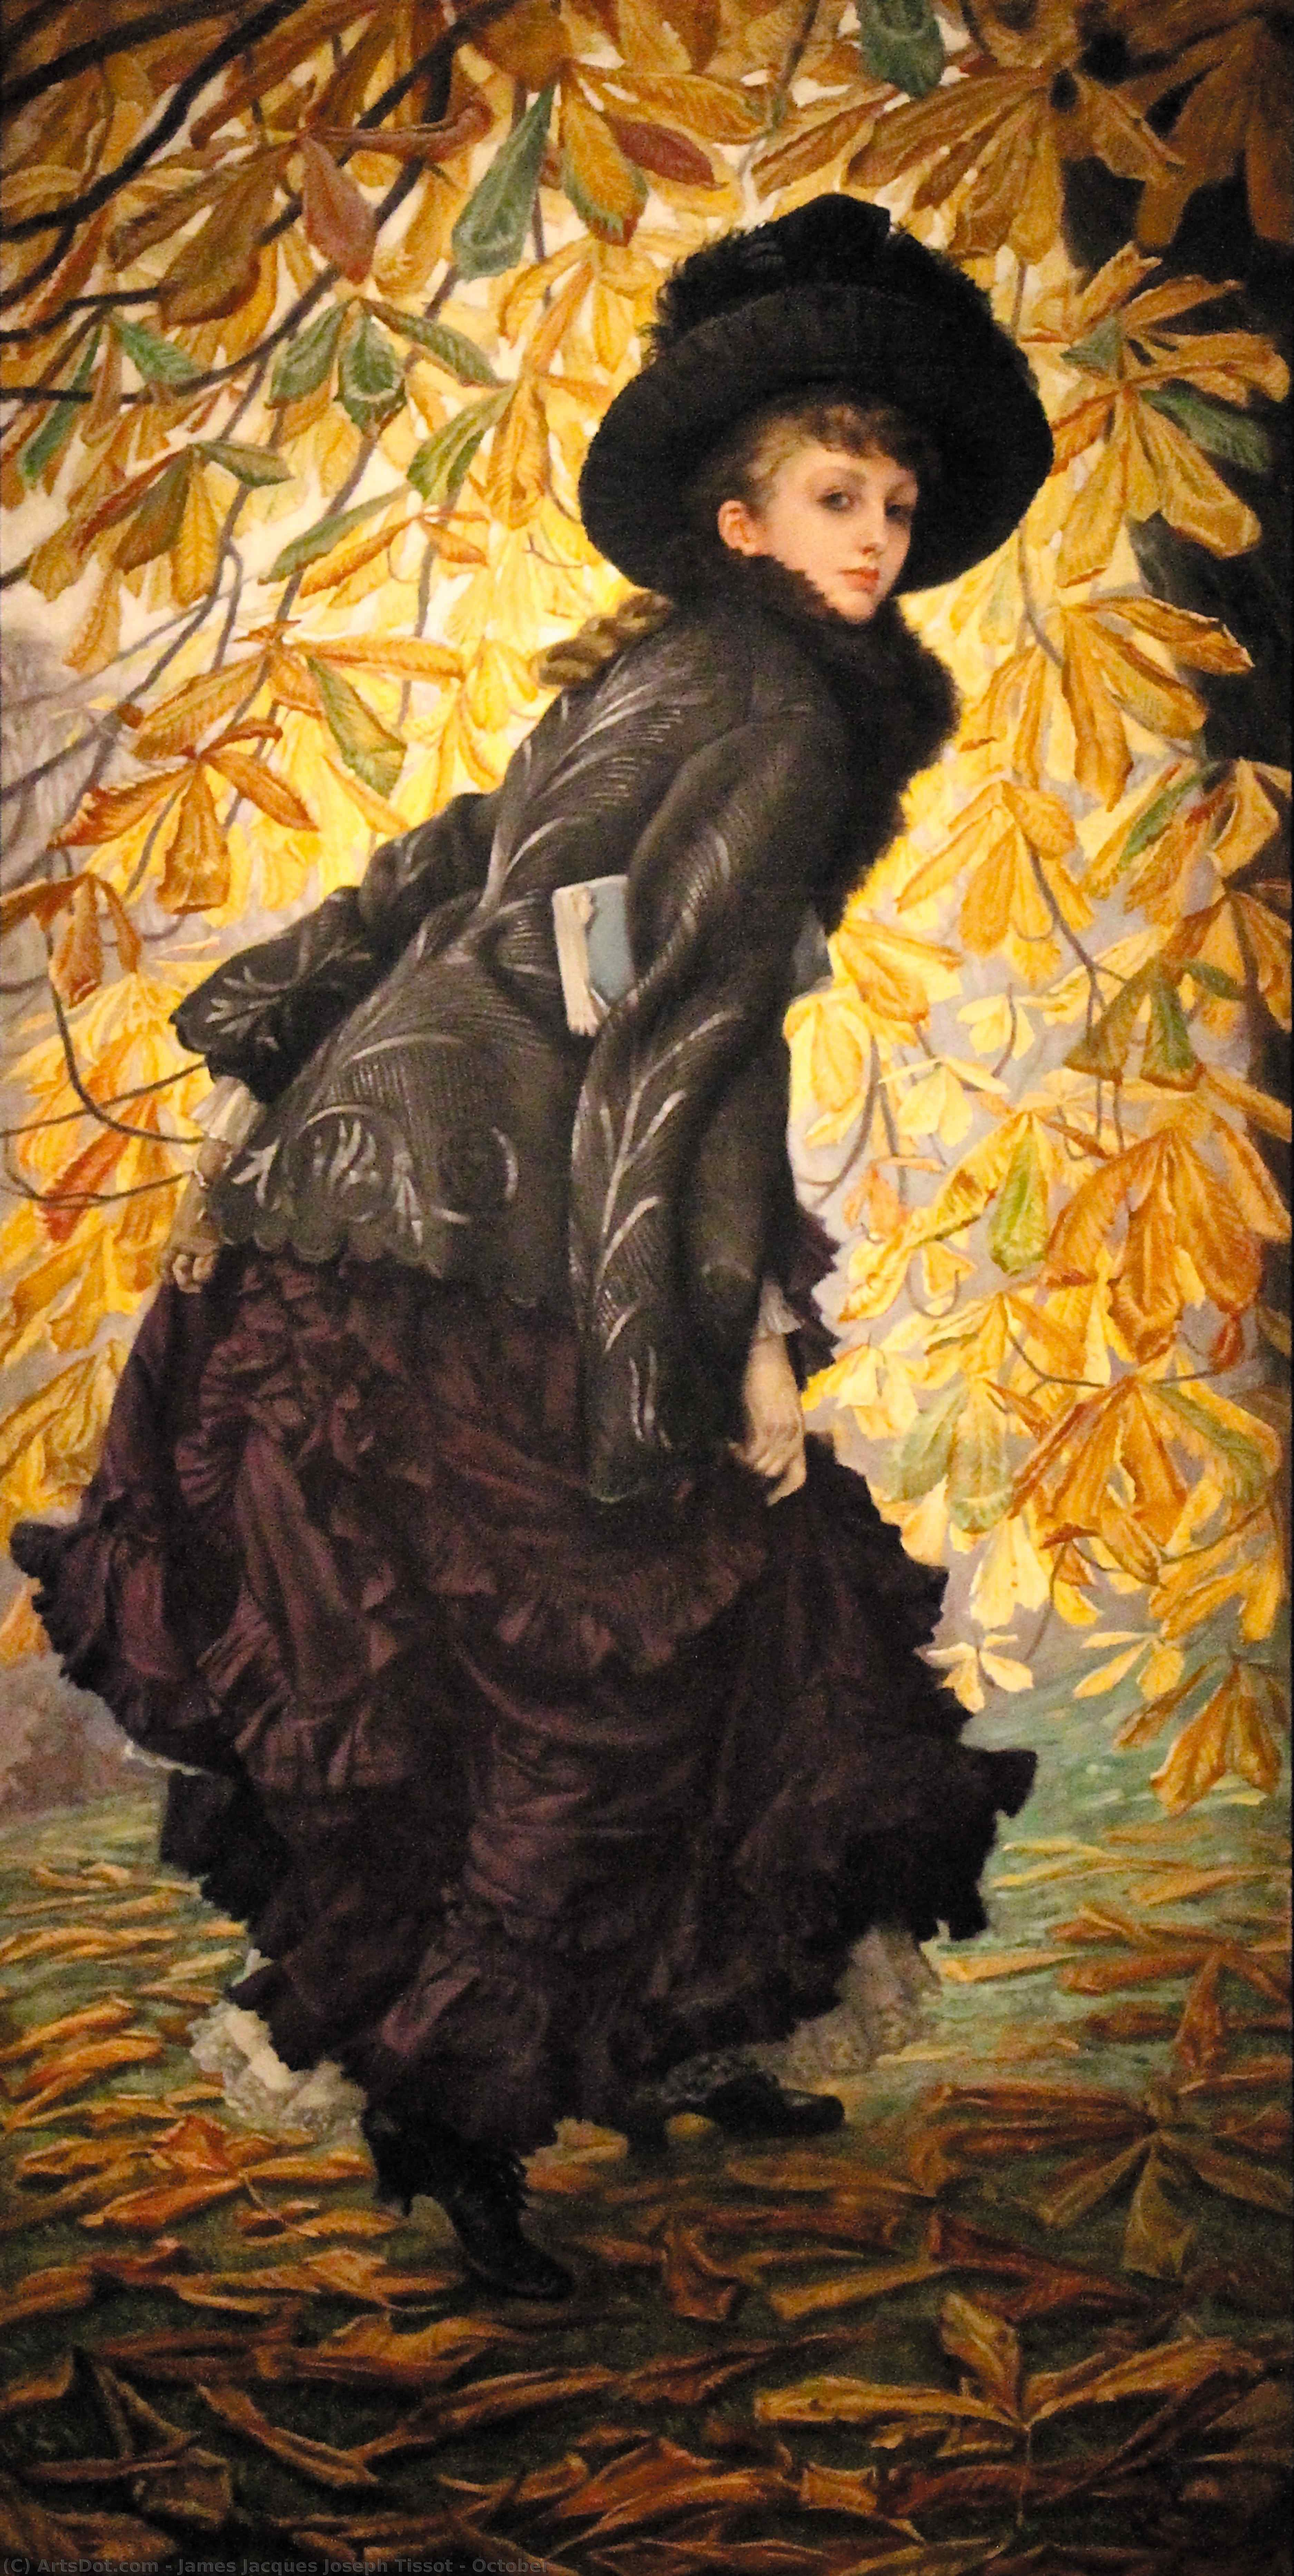 Wikioo.org - The Encyclopedia of Fine Arts - Painting, Artwork by James Jacques Joseph Tissot - October